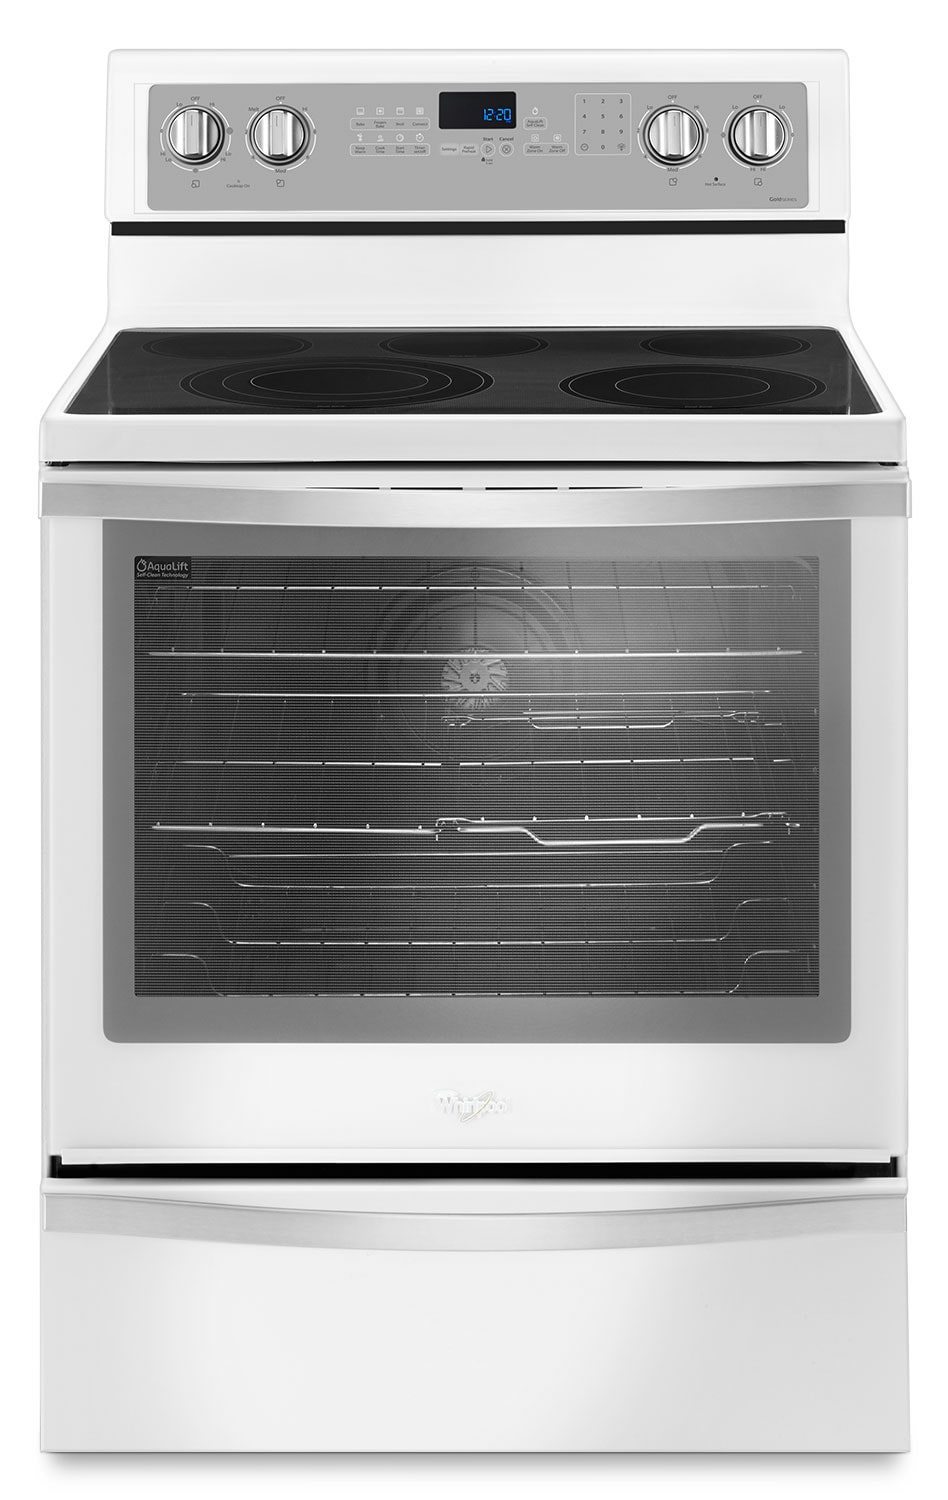 Whirlpool 6.4 Cu. Ft. Freestanding Electric Range – YWFE745H0FH